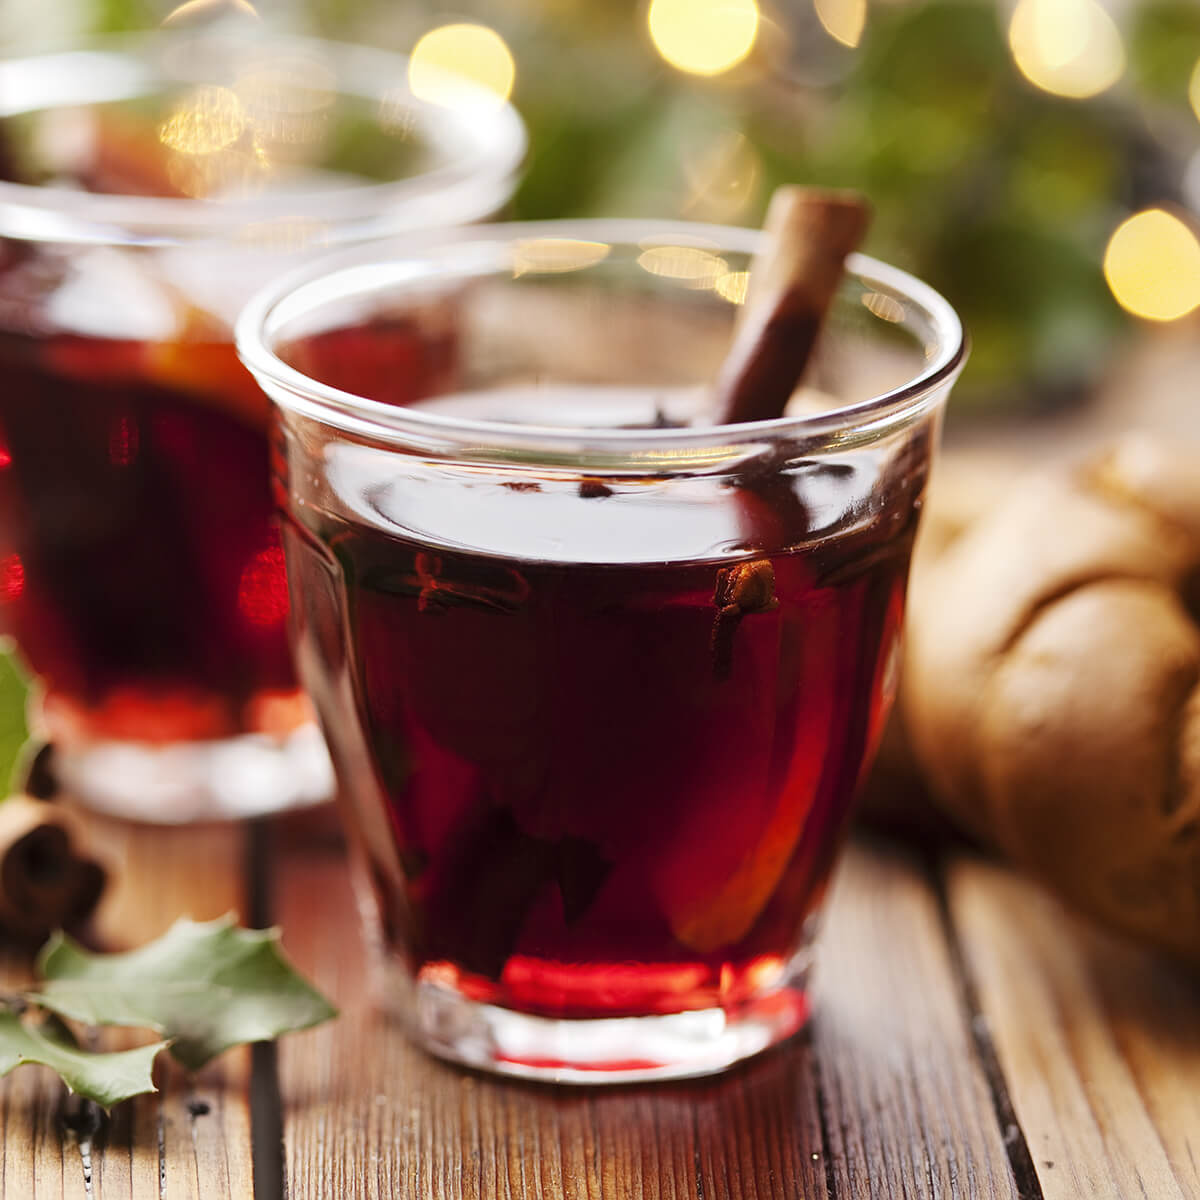 mulled wine is one of the 21 Best Vegan Christmas Dinner Recipes